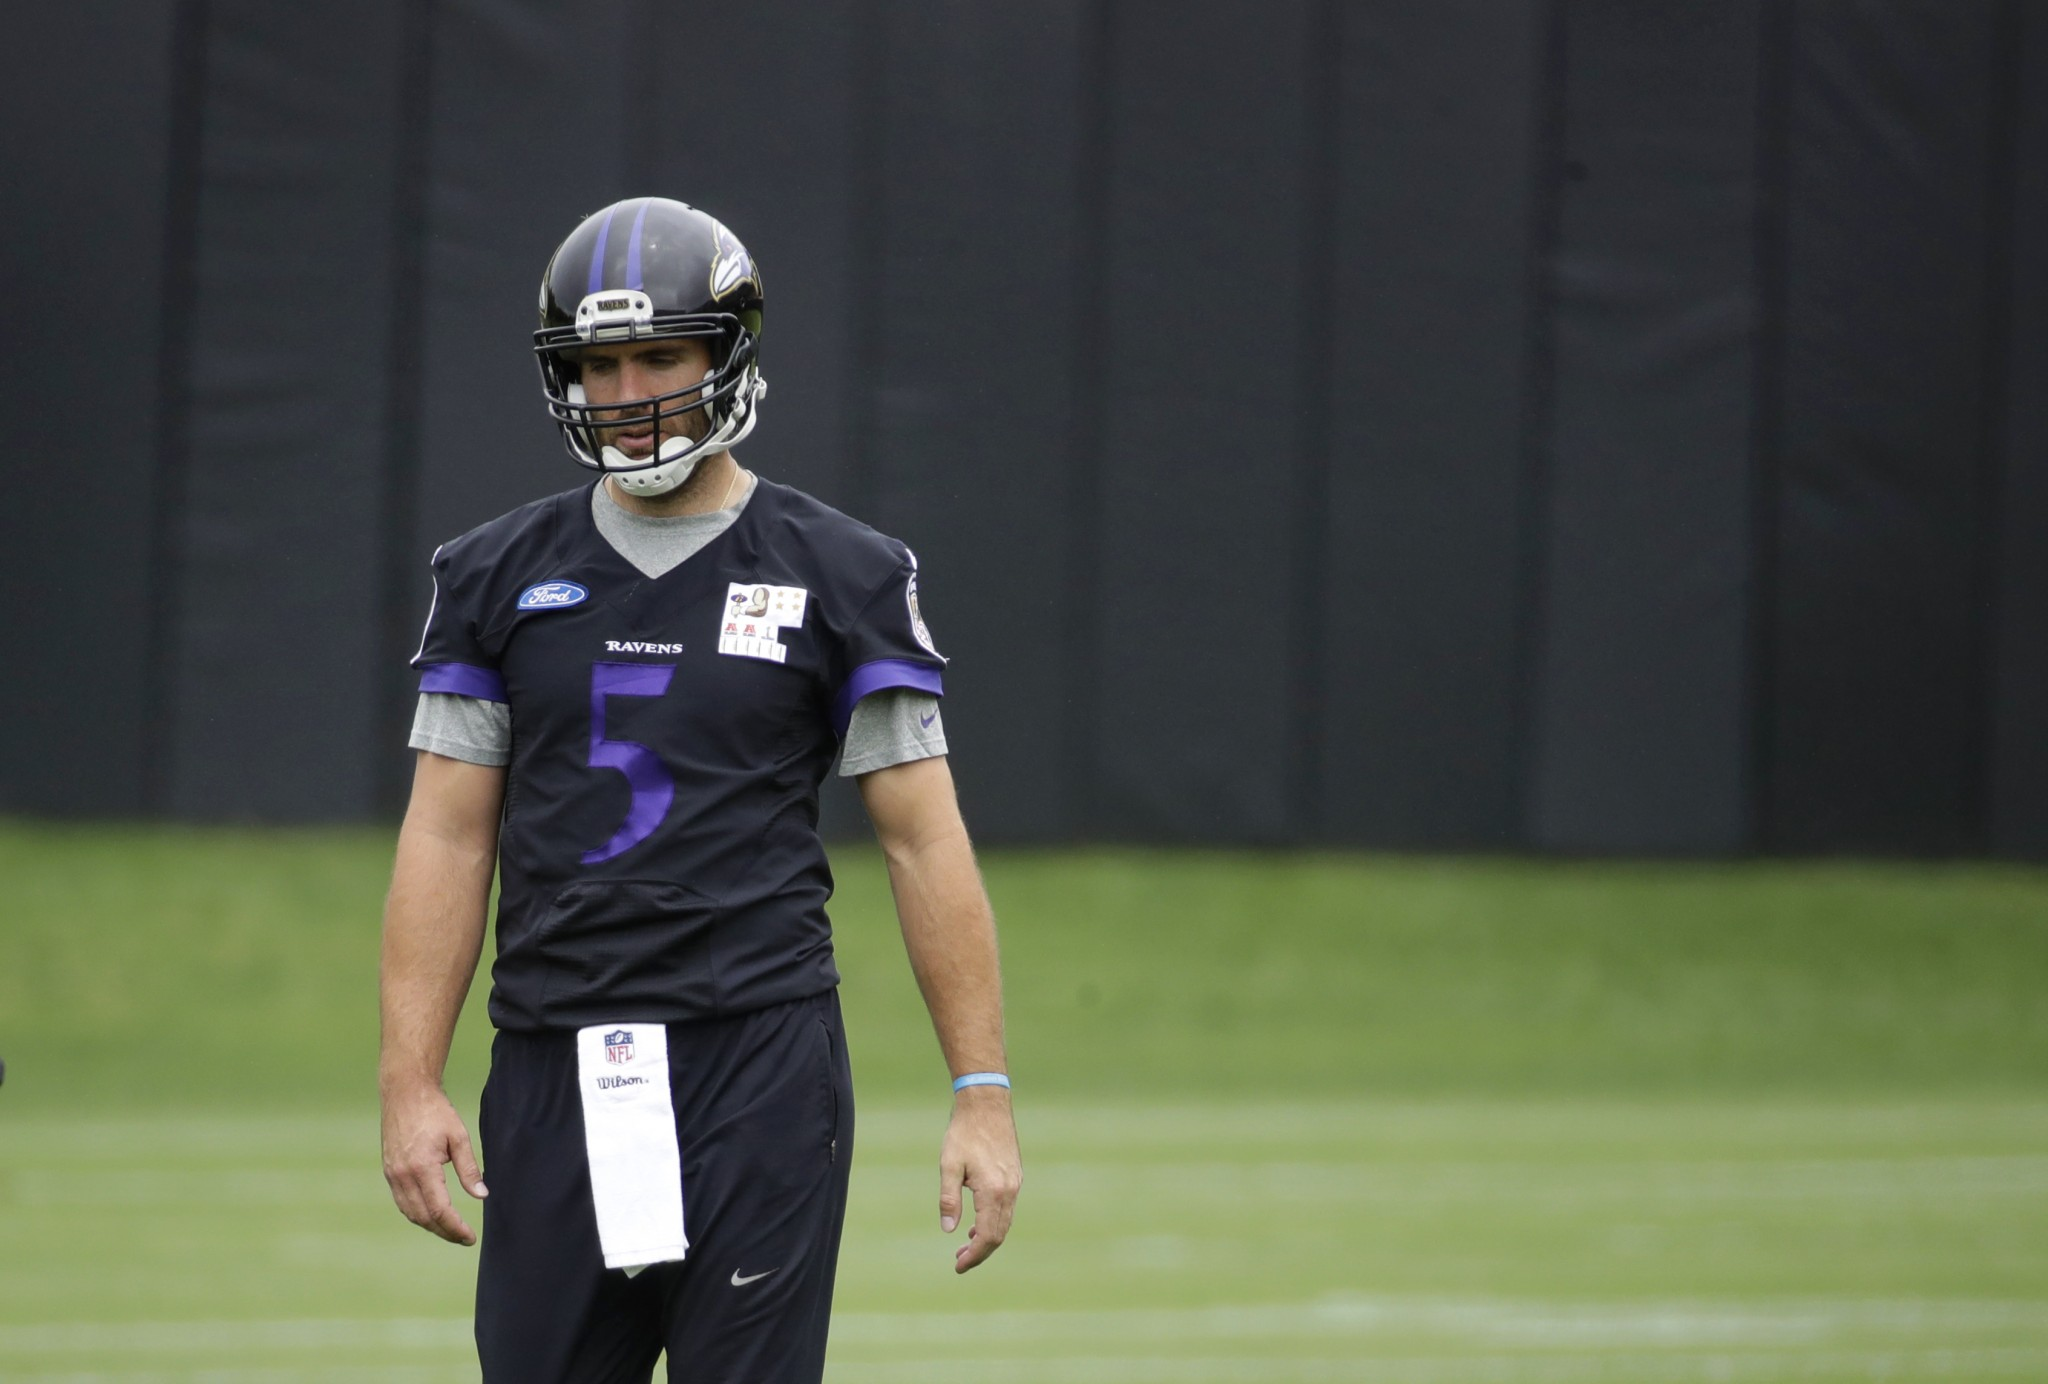 The Ravens open training camp on Thursday, but QB Joe Flacco is dealing with a back issue. (AP)